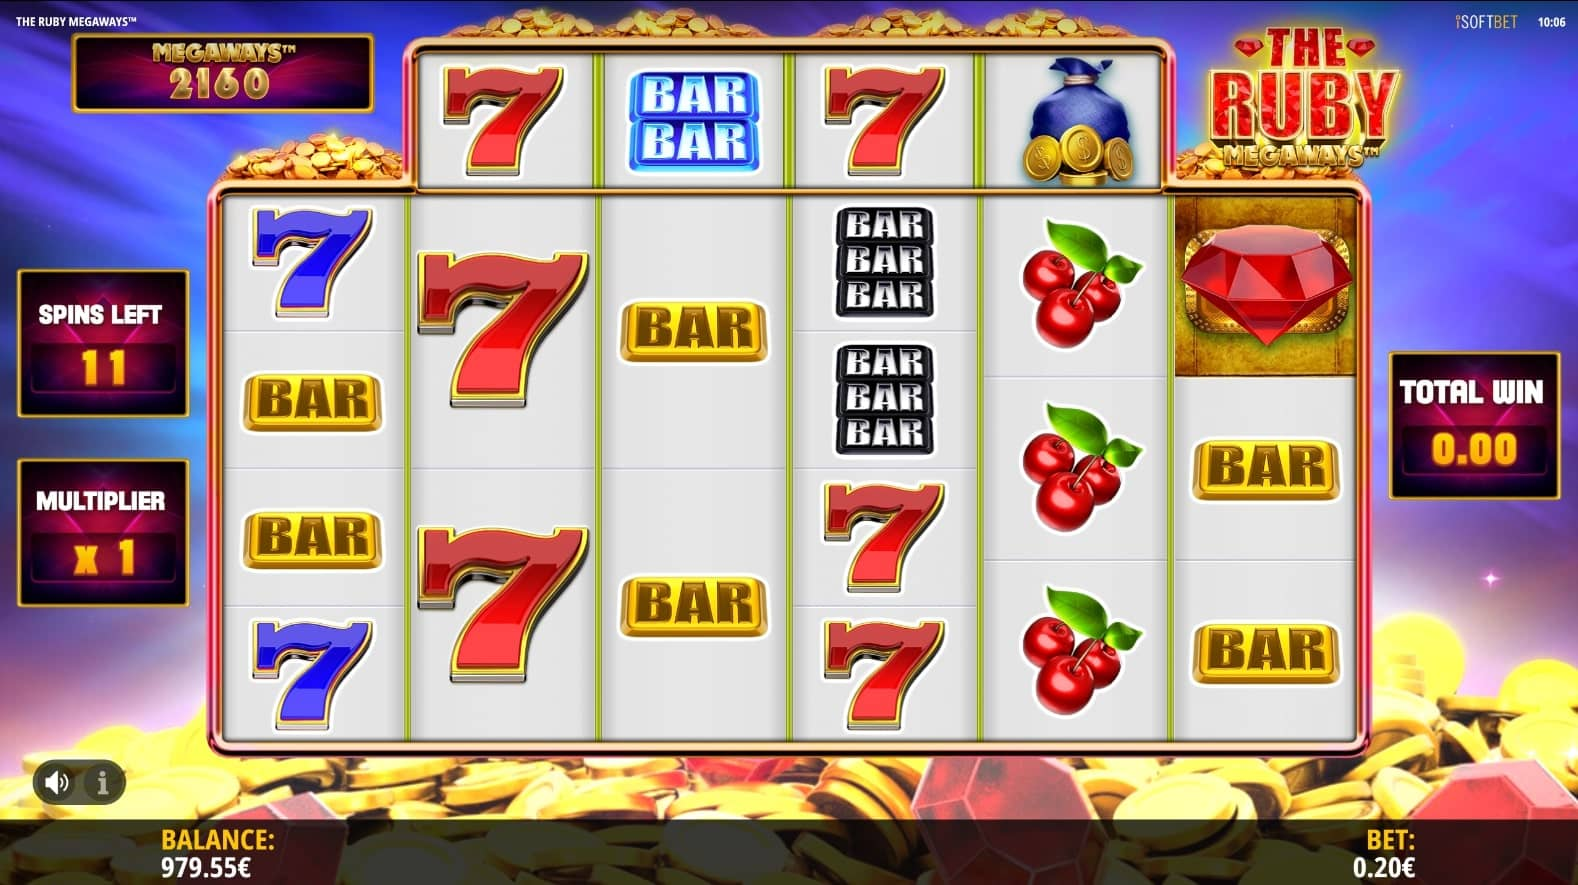 The Ruby Megaways Slot Free Spins